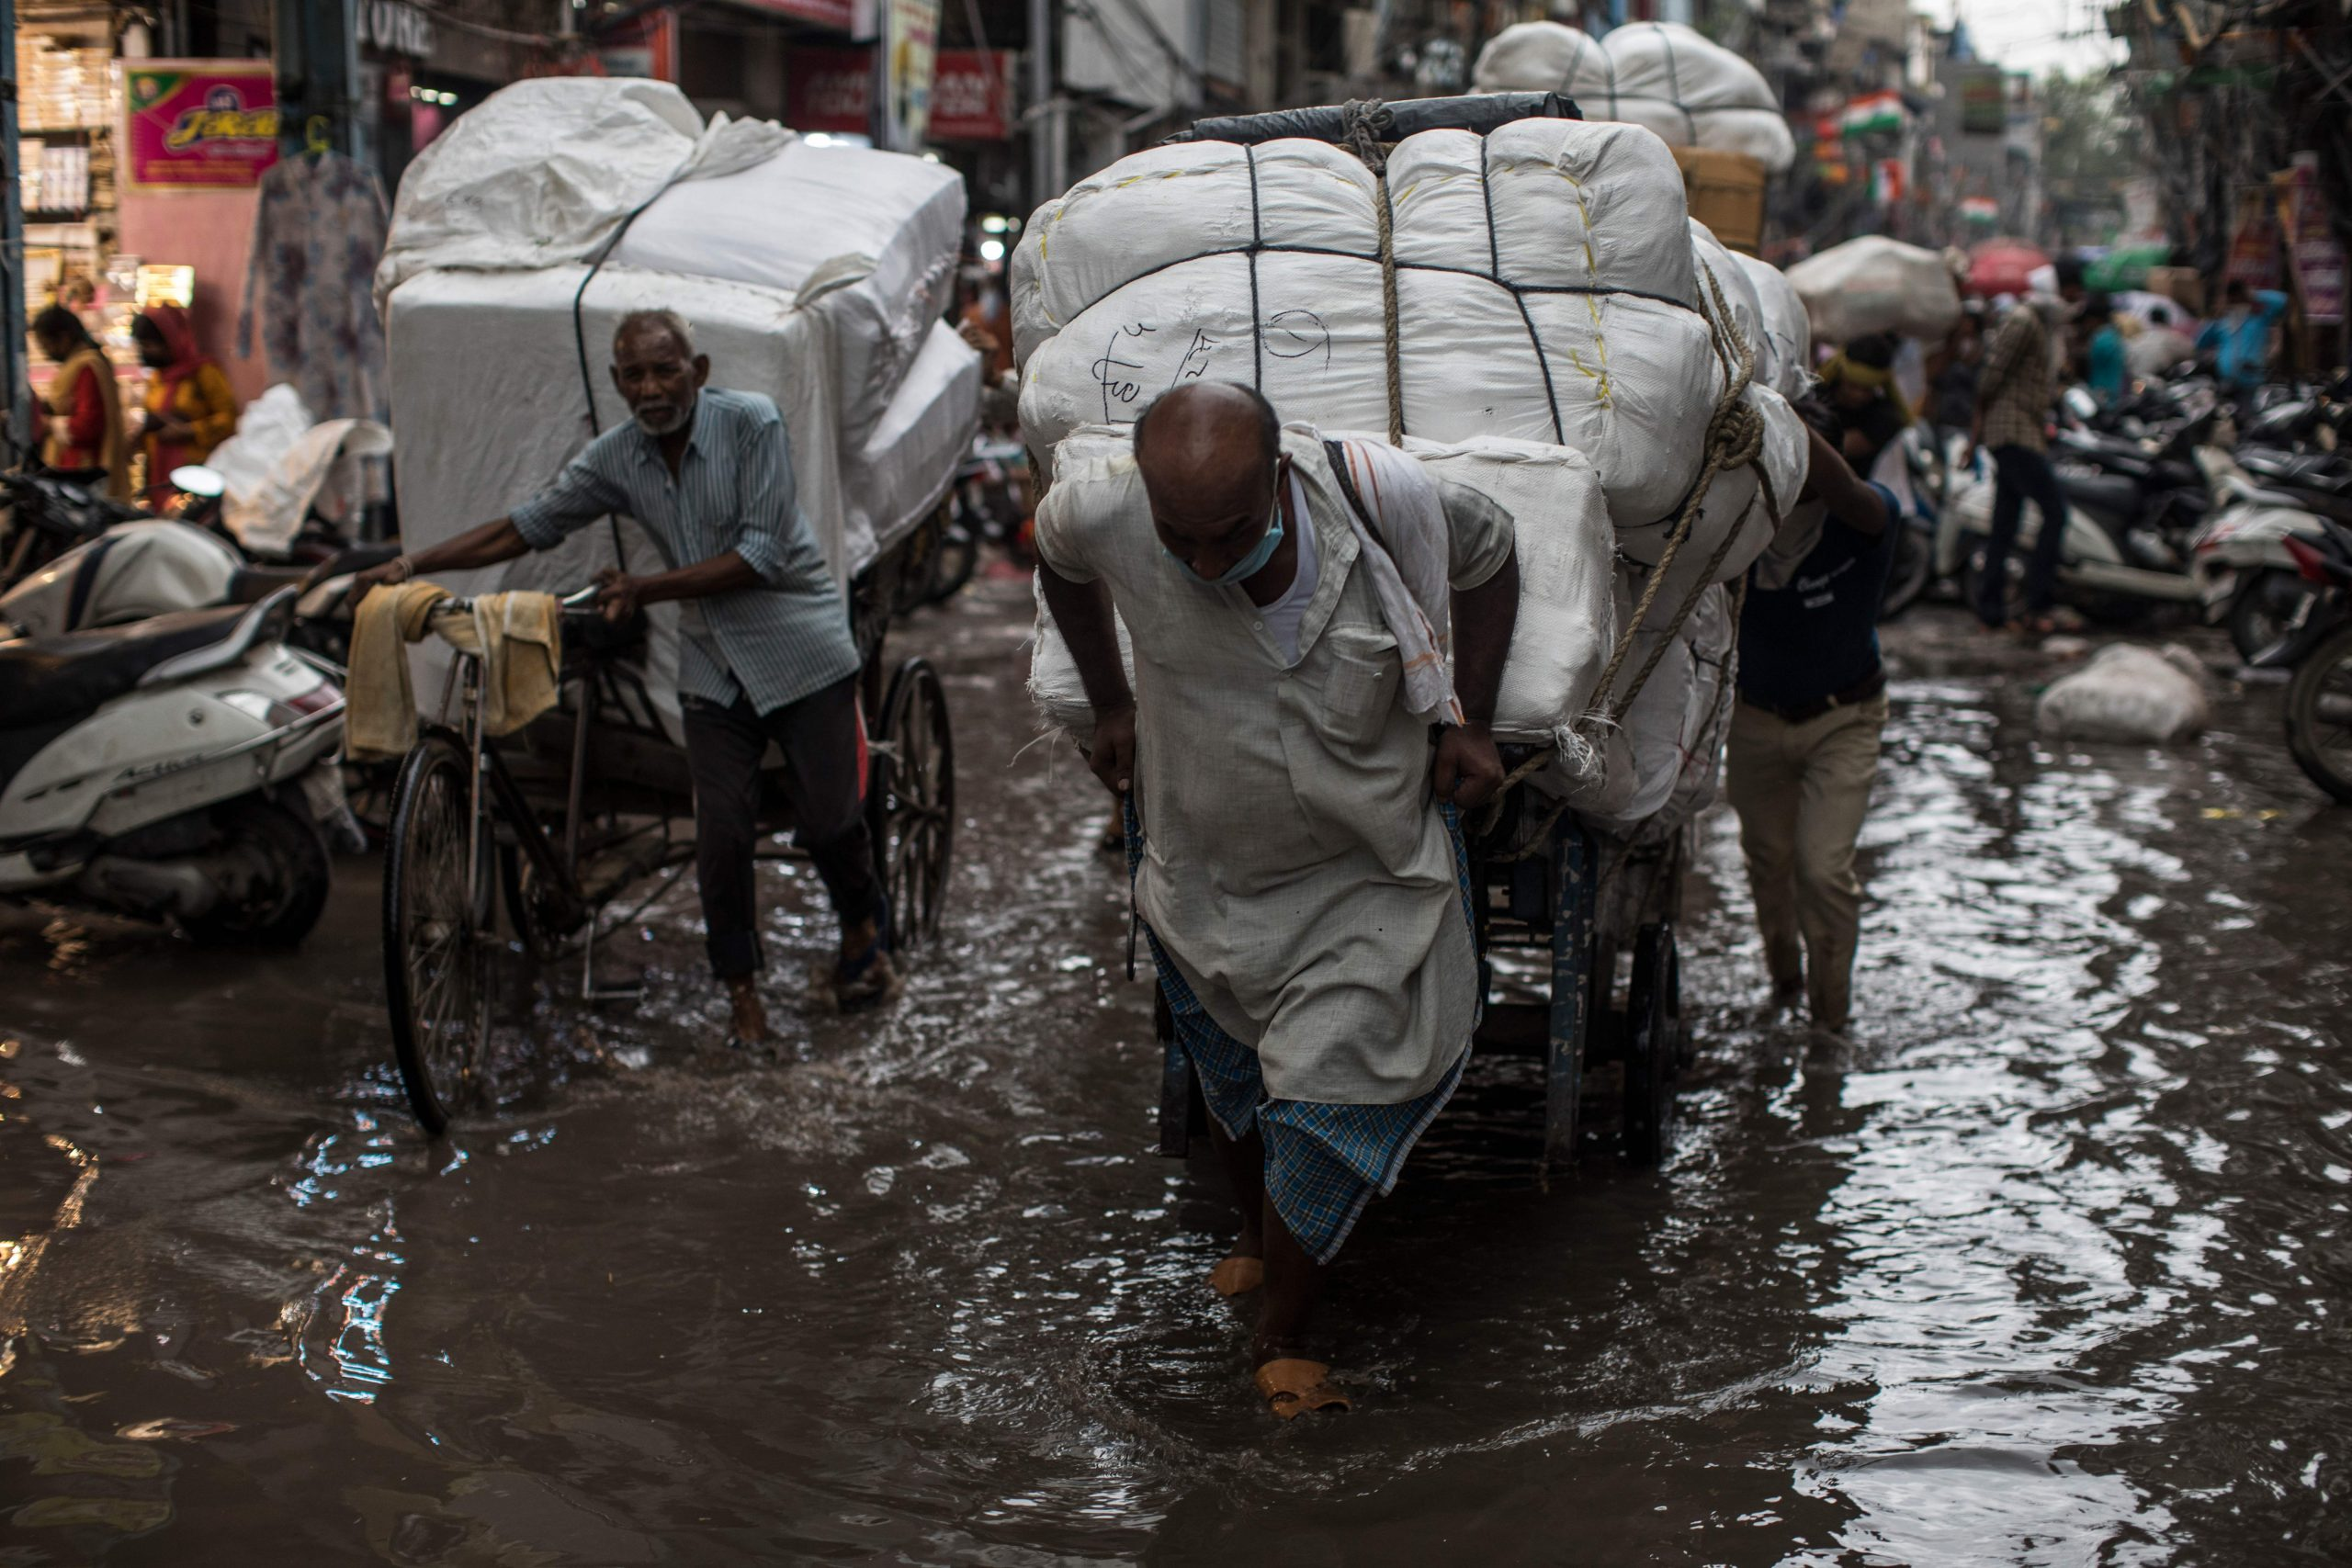 Labourers wade along a flooded street while pulling a handcart and a rickshaw (L) after a monsoon rainfall in New Delhi on July 29, 2020. (Photo by Xavier GALIANA / AFP) (Photo by XAVIER GALIANA/AFP via Getty Images)